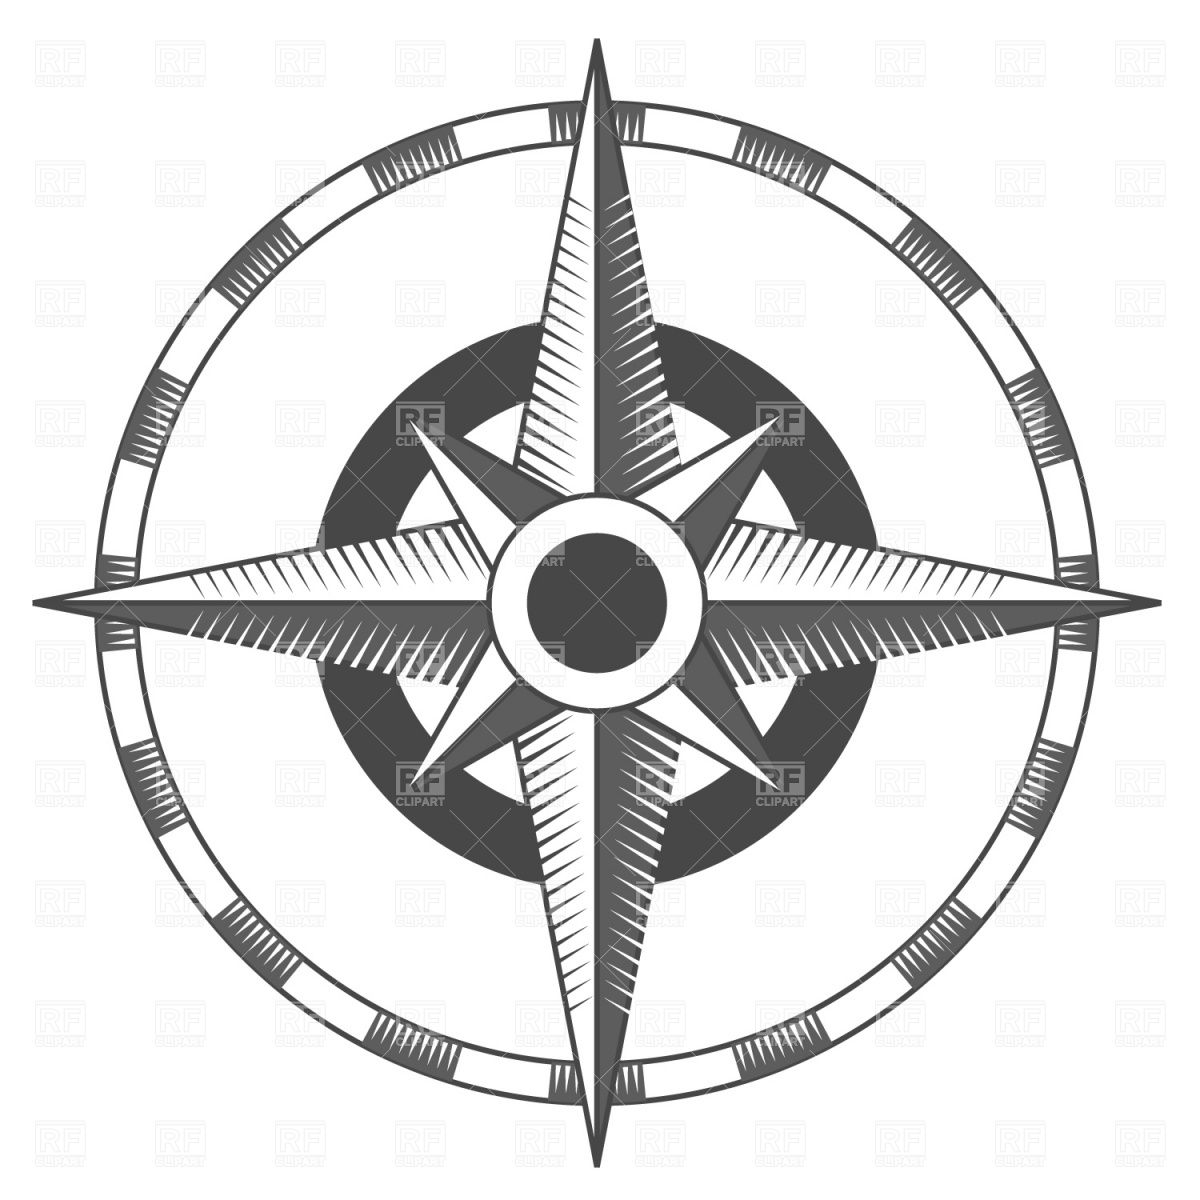 Vintage compass rose Stock Vector Image.